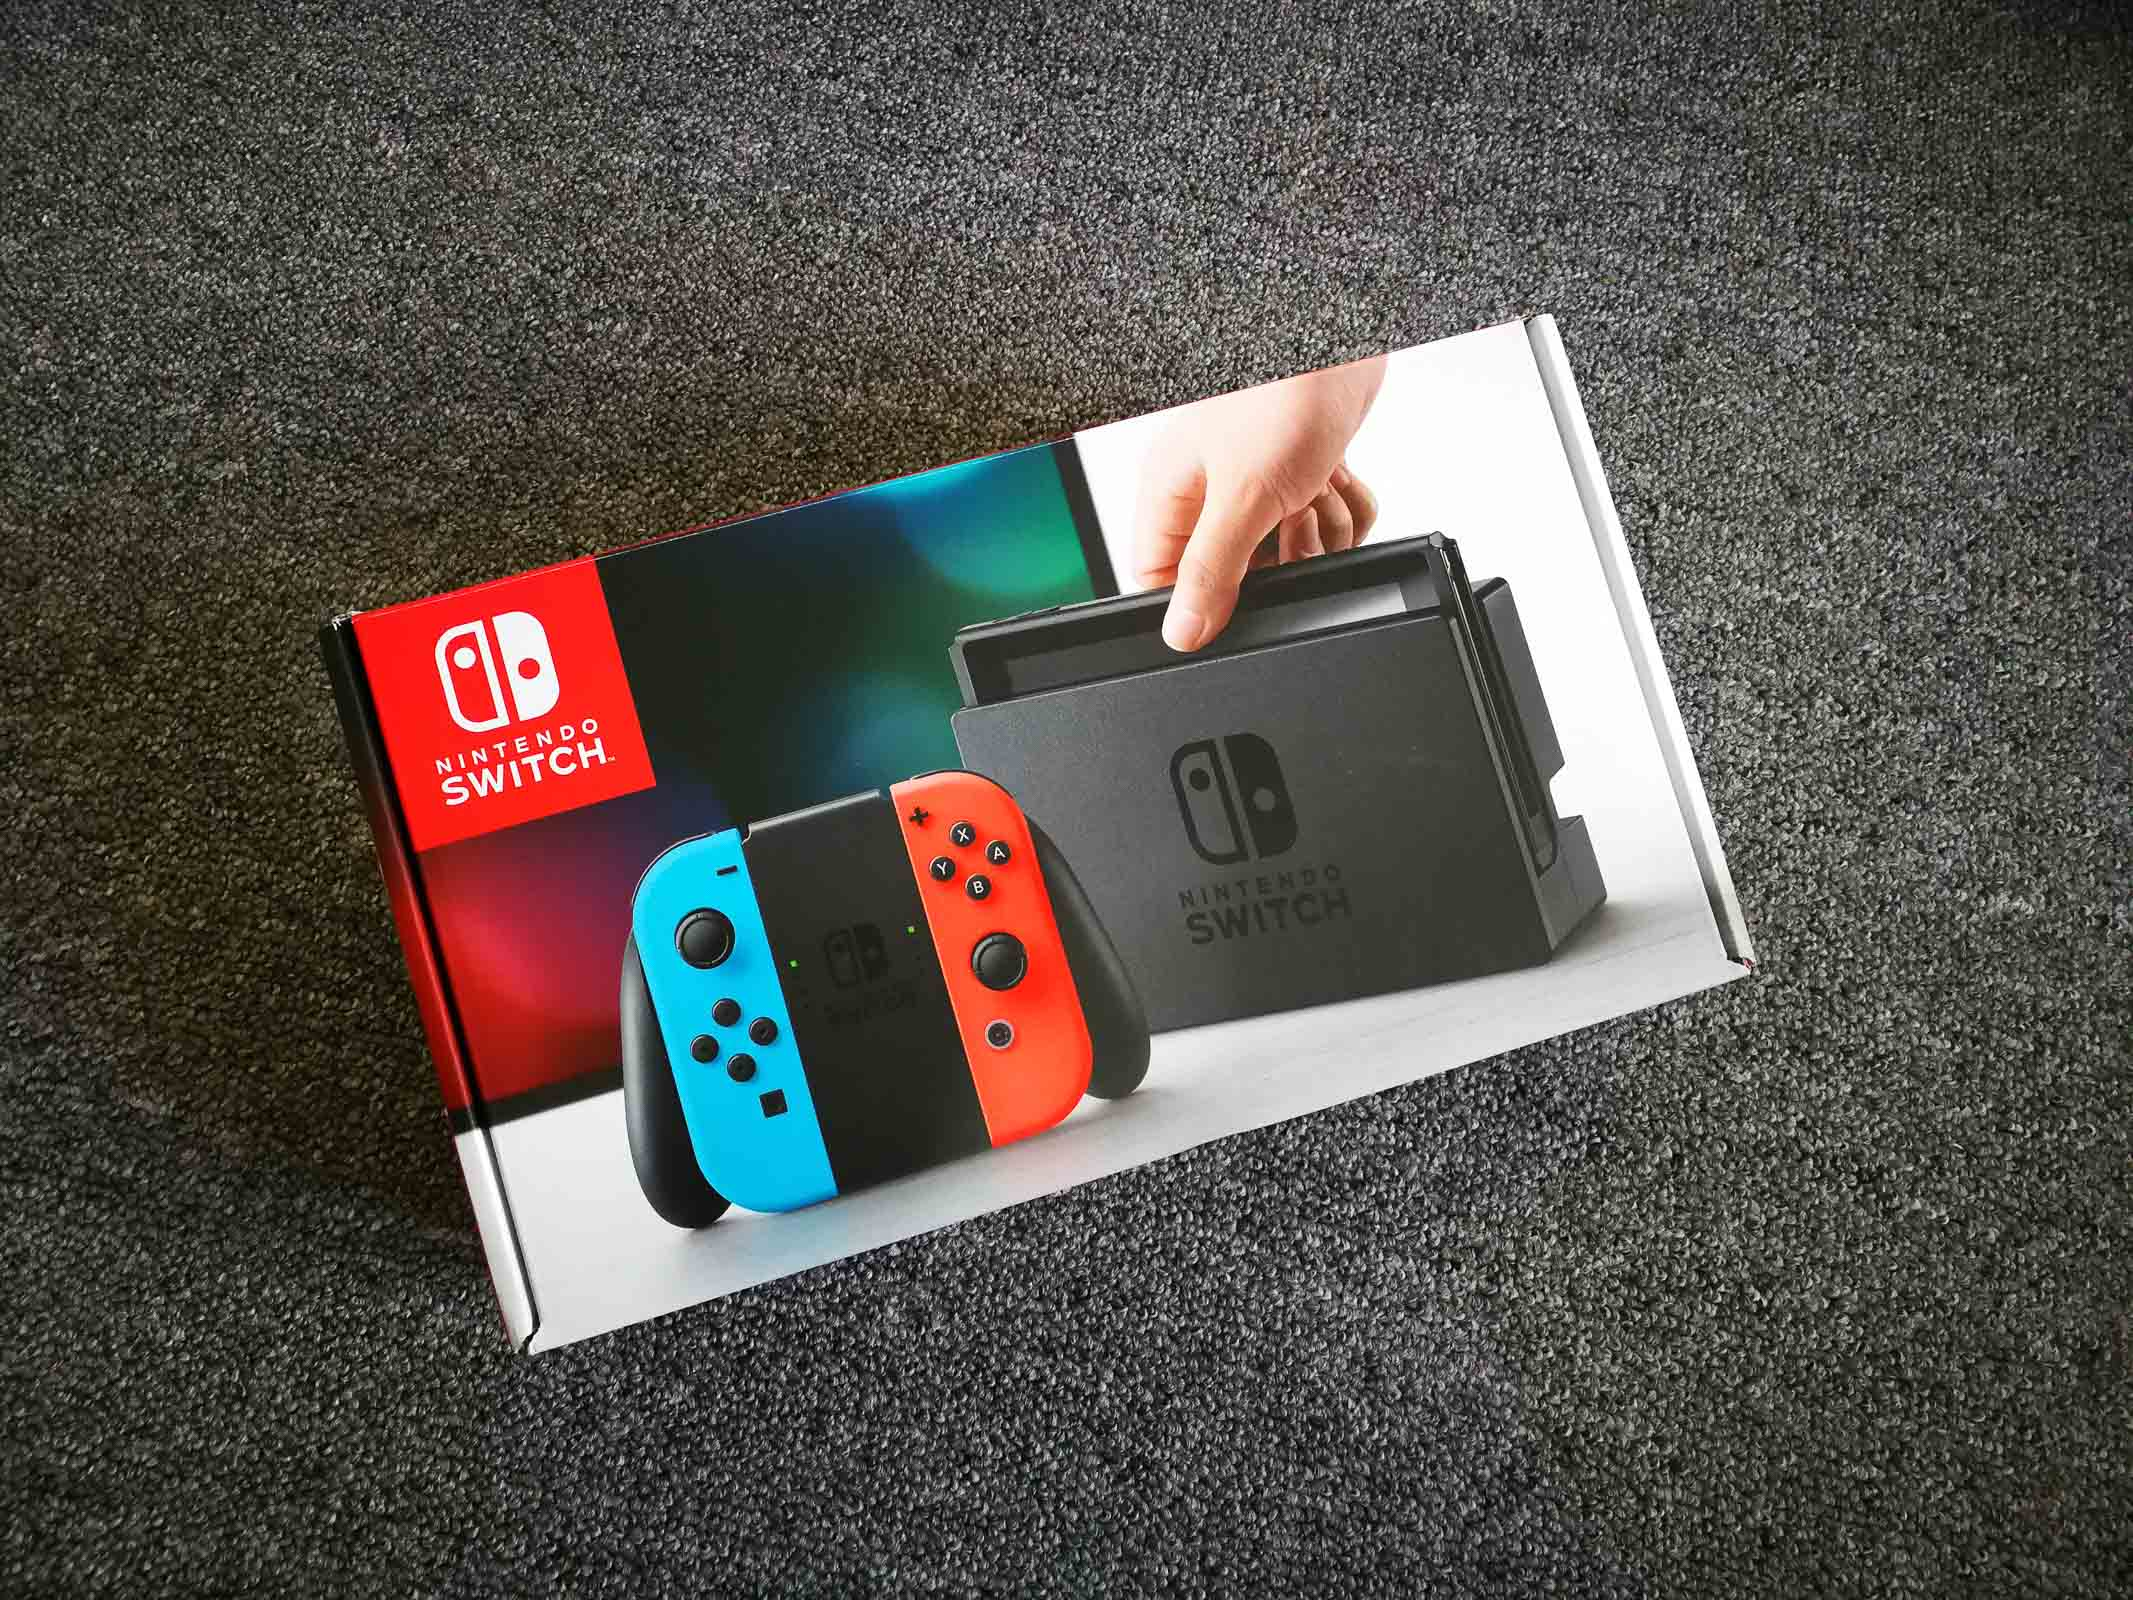 Nintendo Switch Unboxing PingWest Photo By Hao Ying